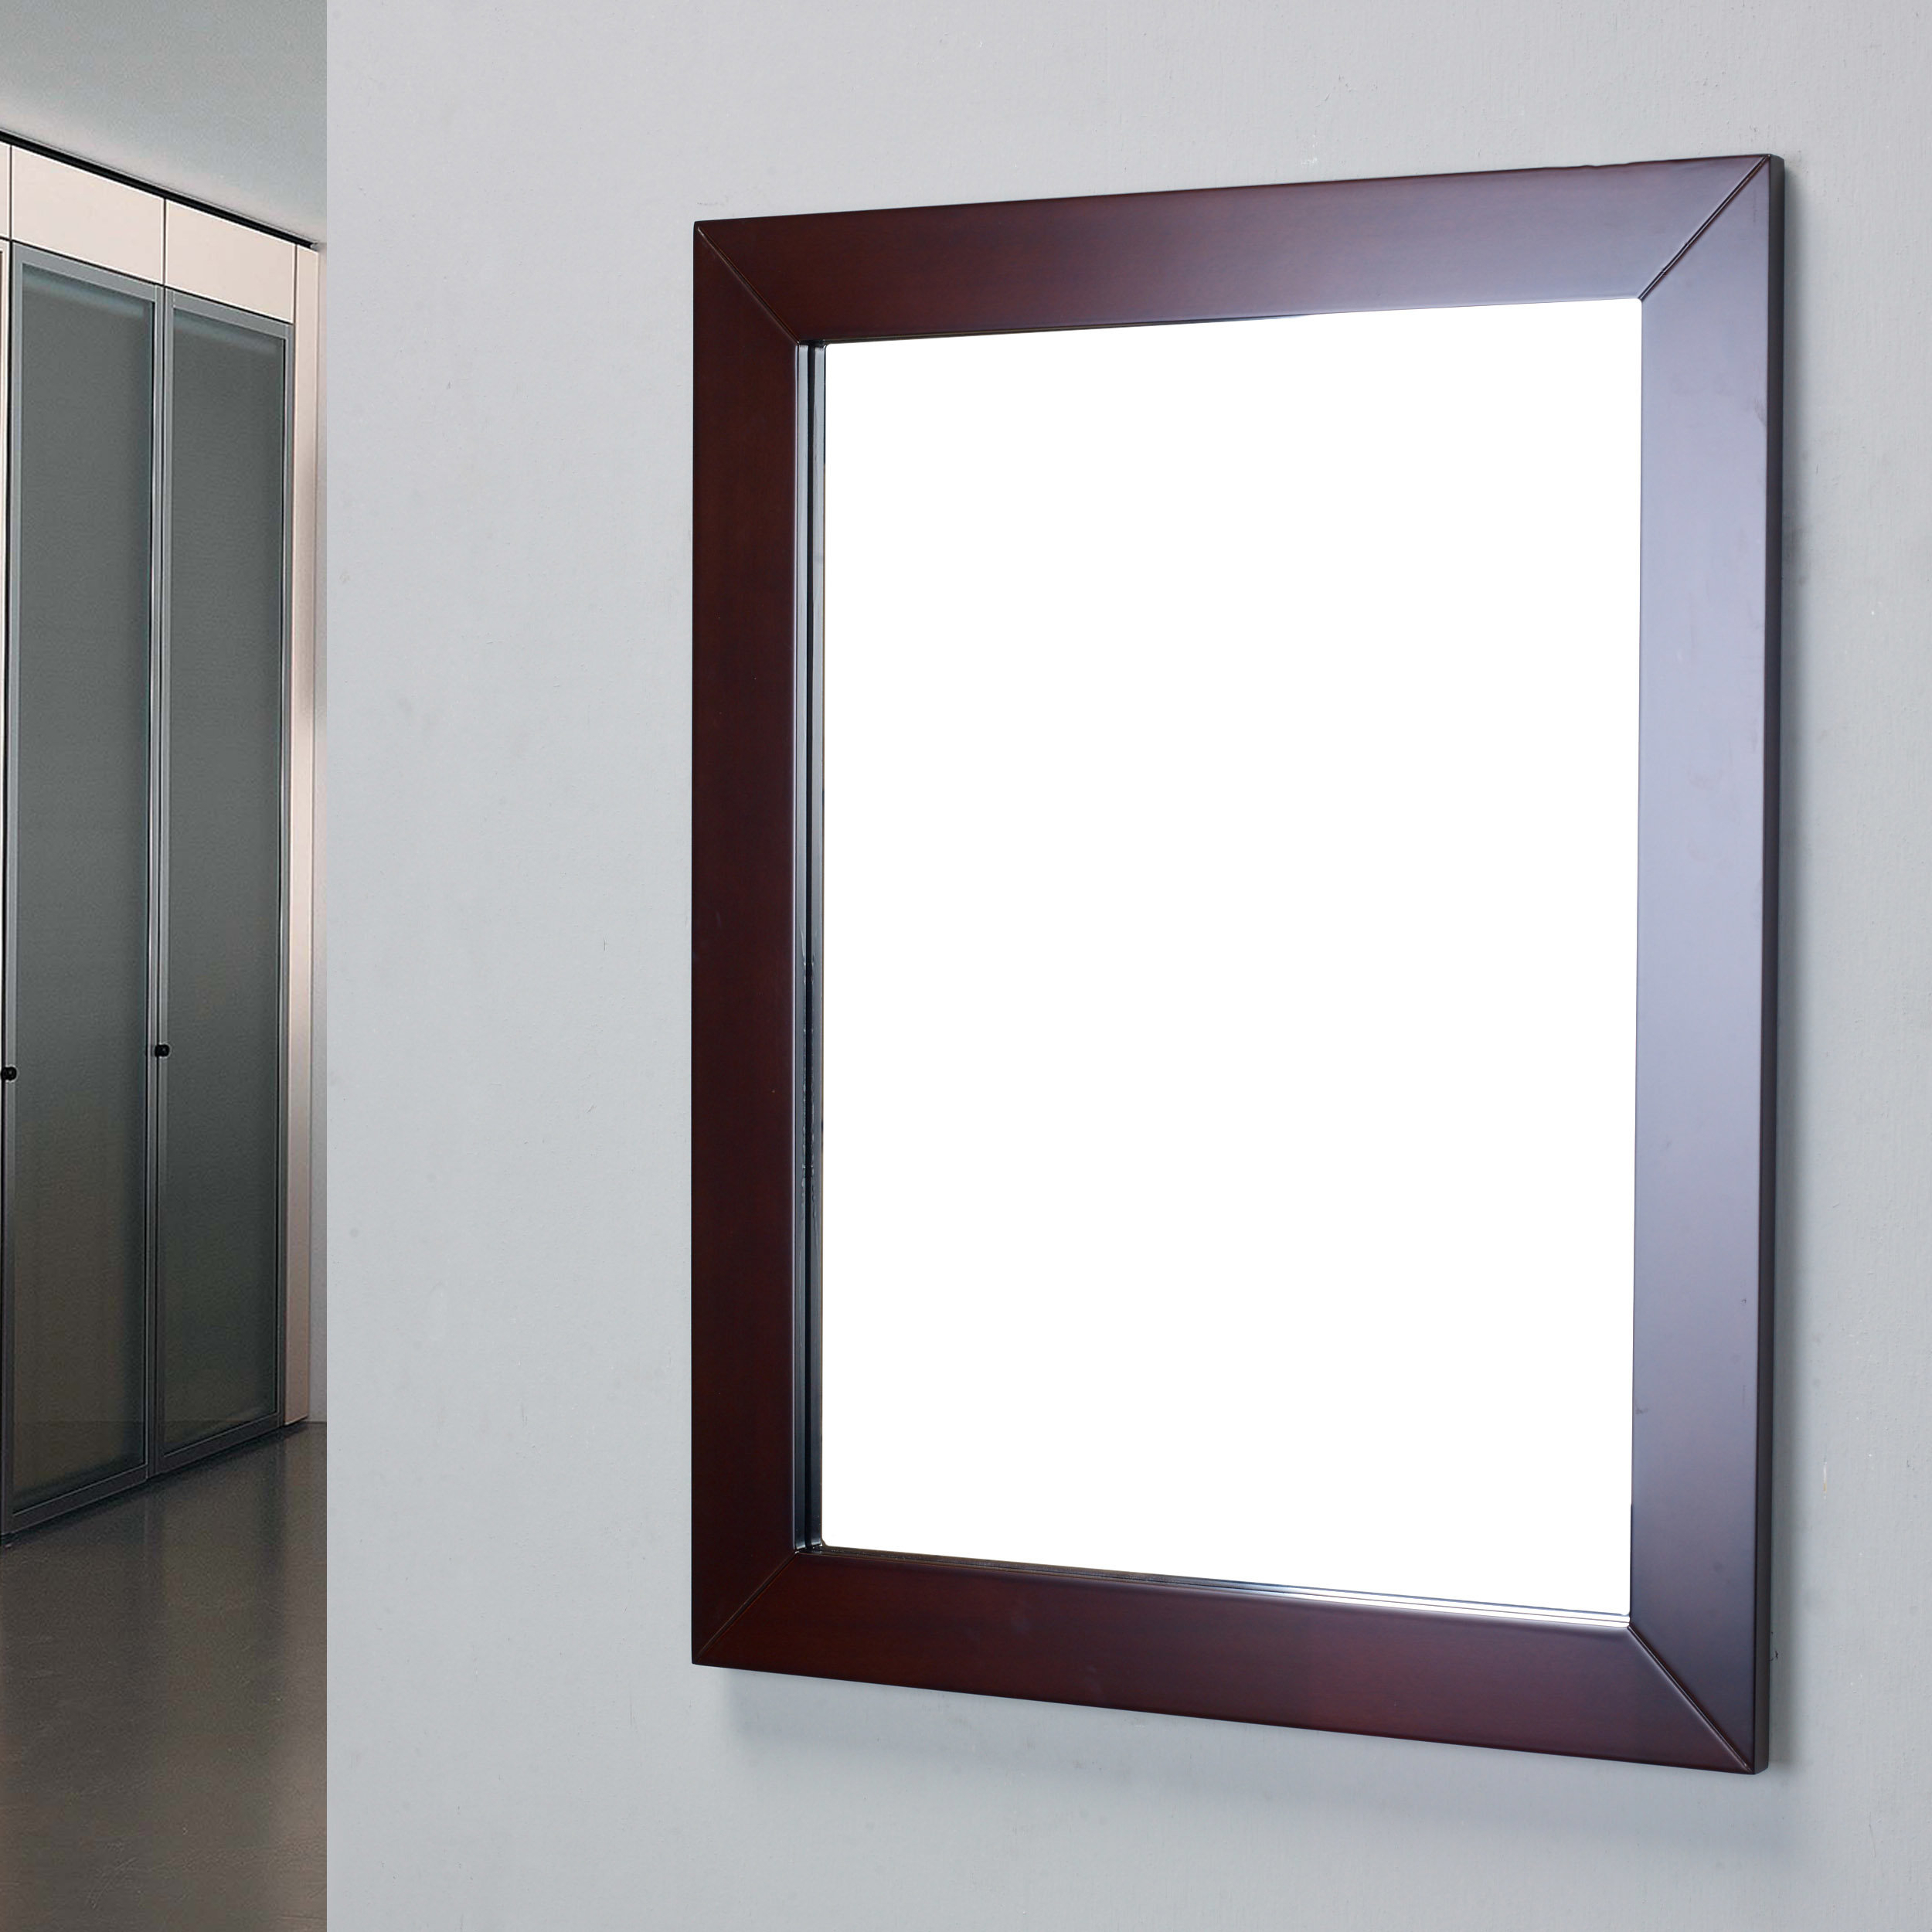 Frame Bathroom Wall Mirrors For Latest Piccirillo Modern Framed Bathroom Wall Mirror (View 8 of 20)